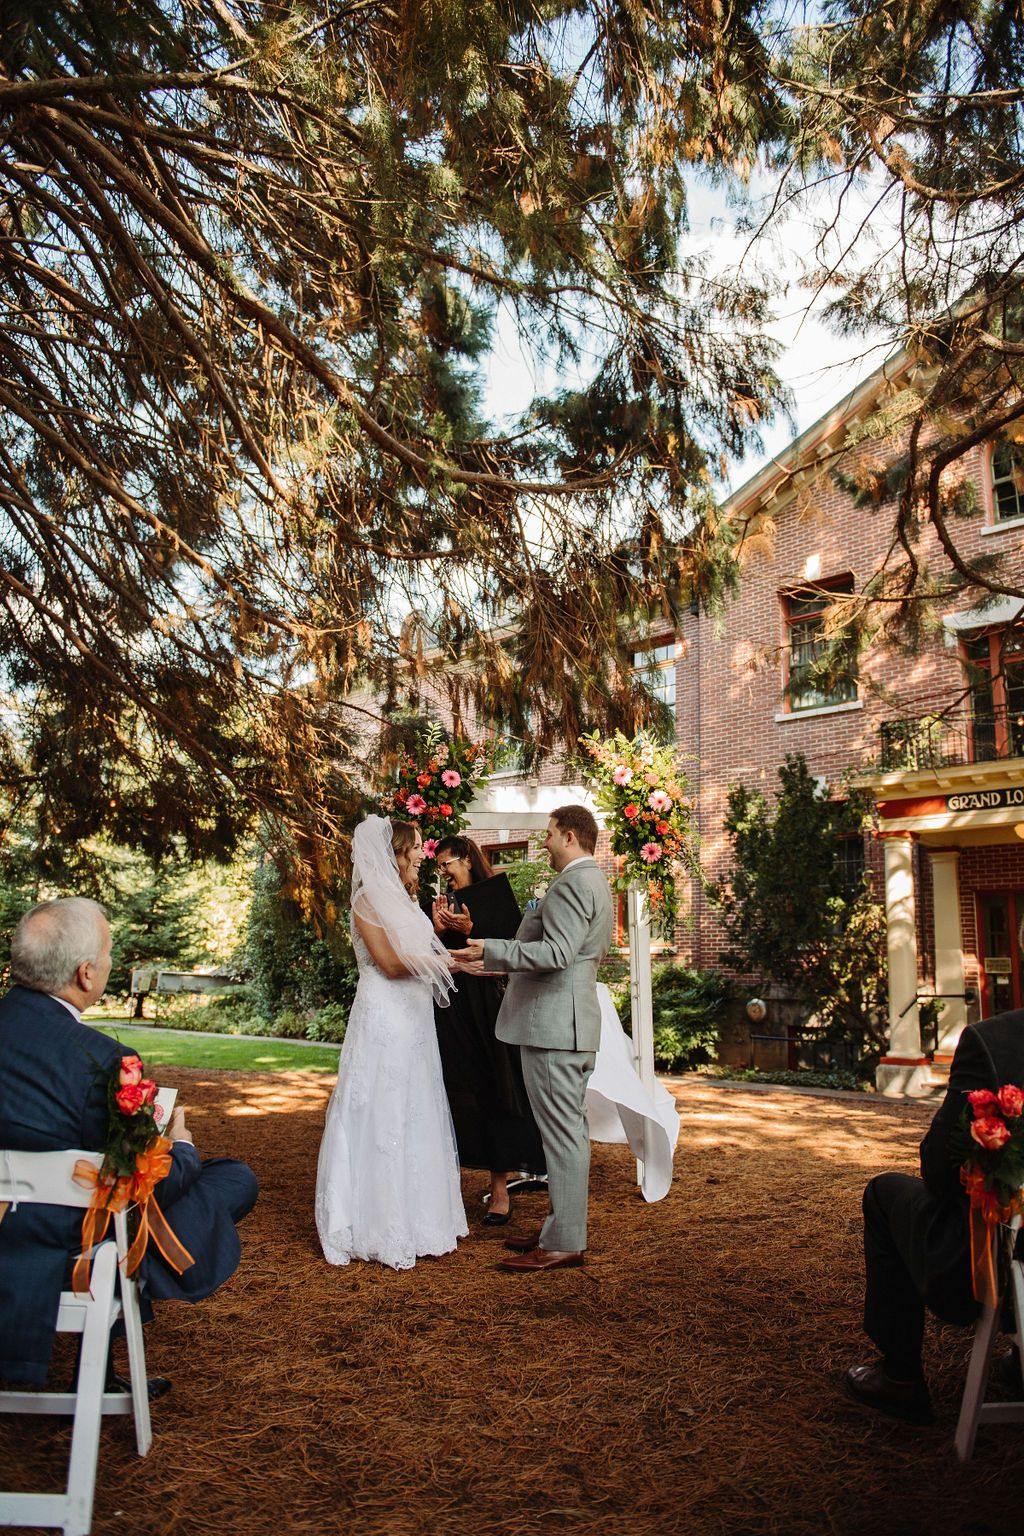 Outdoor wedding venue at McMenamins Grand Lodge in Forest